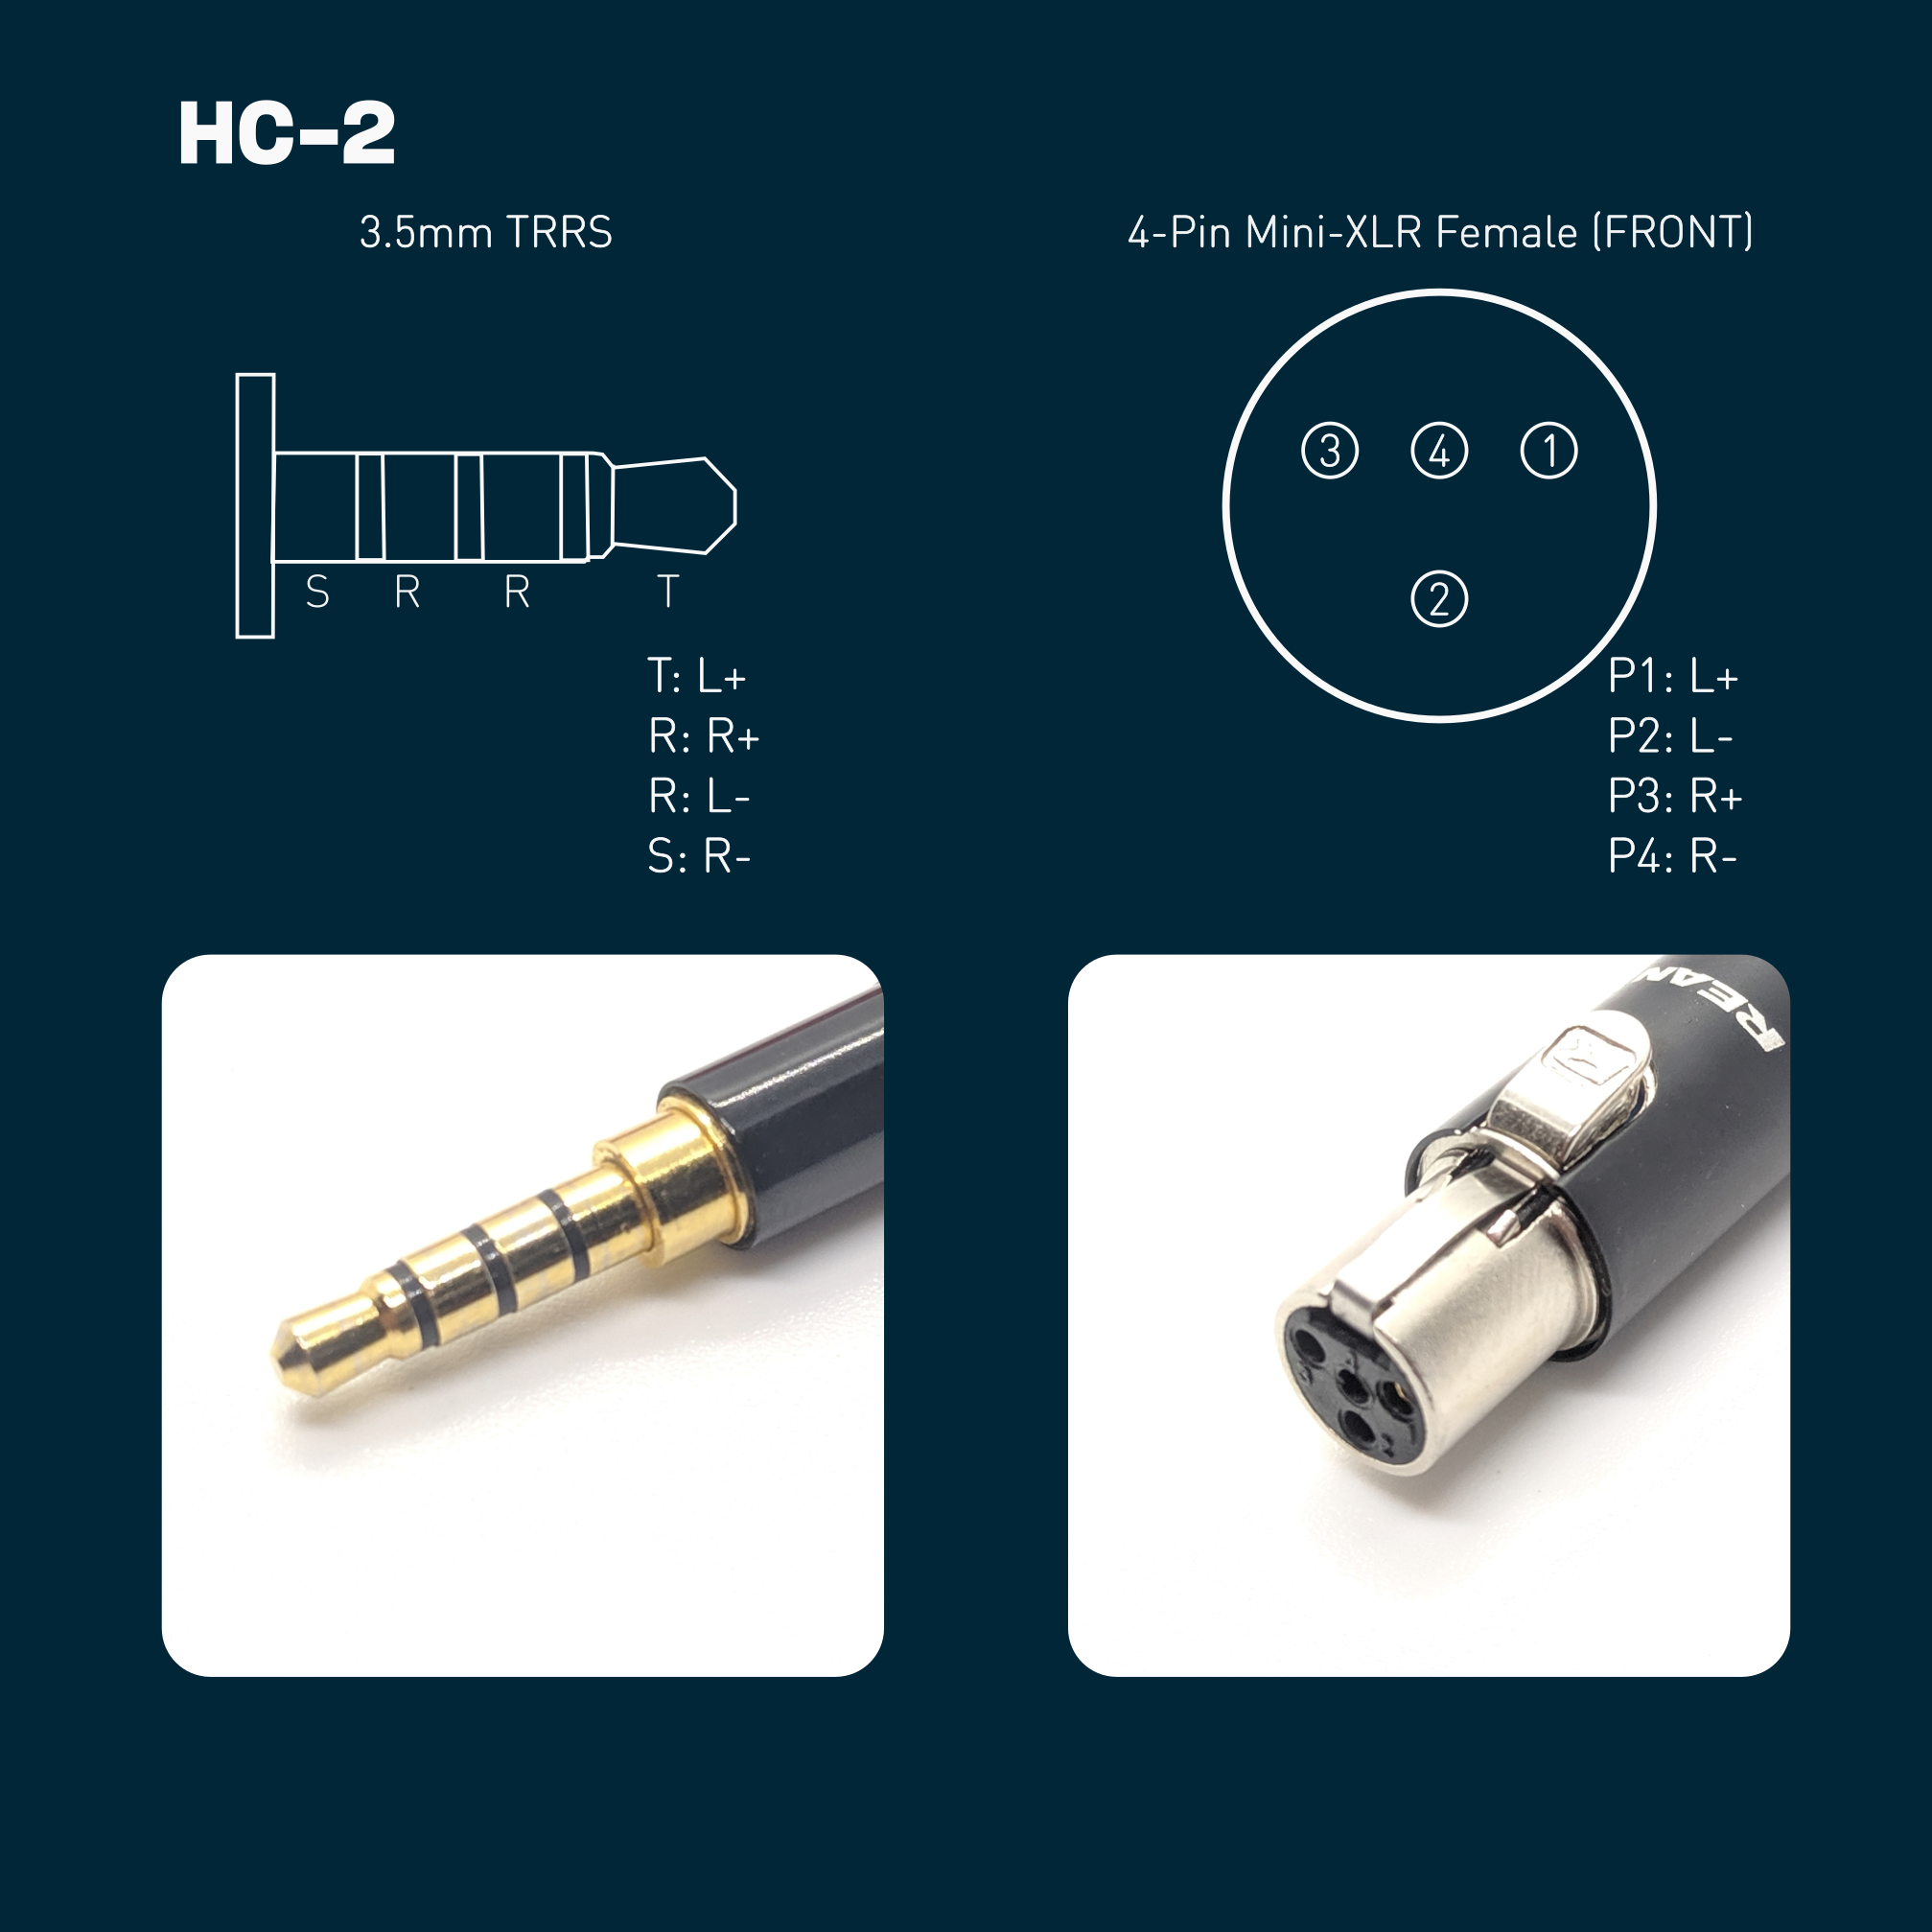 HC-2: 3.5mm TRRS Balanced Headphone Cable